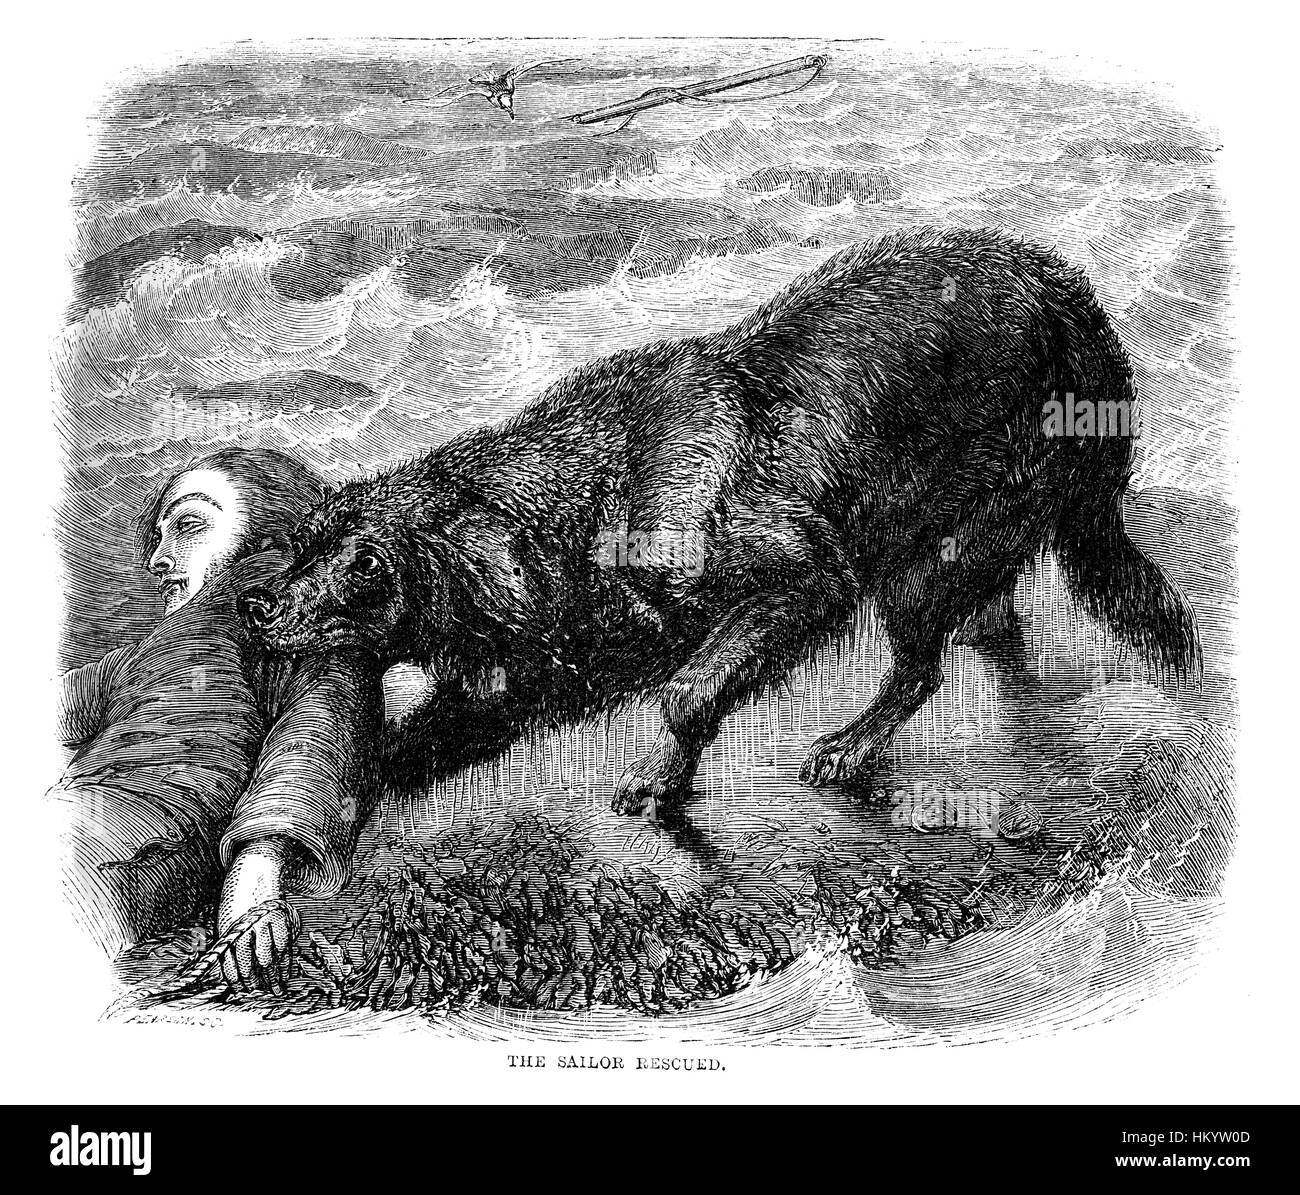 Dog. 19th century Engraving from 'Popular Natural History' published in 1866. - Stock Image